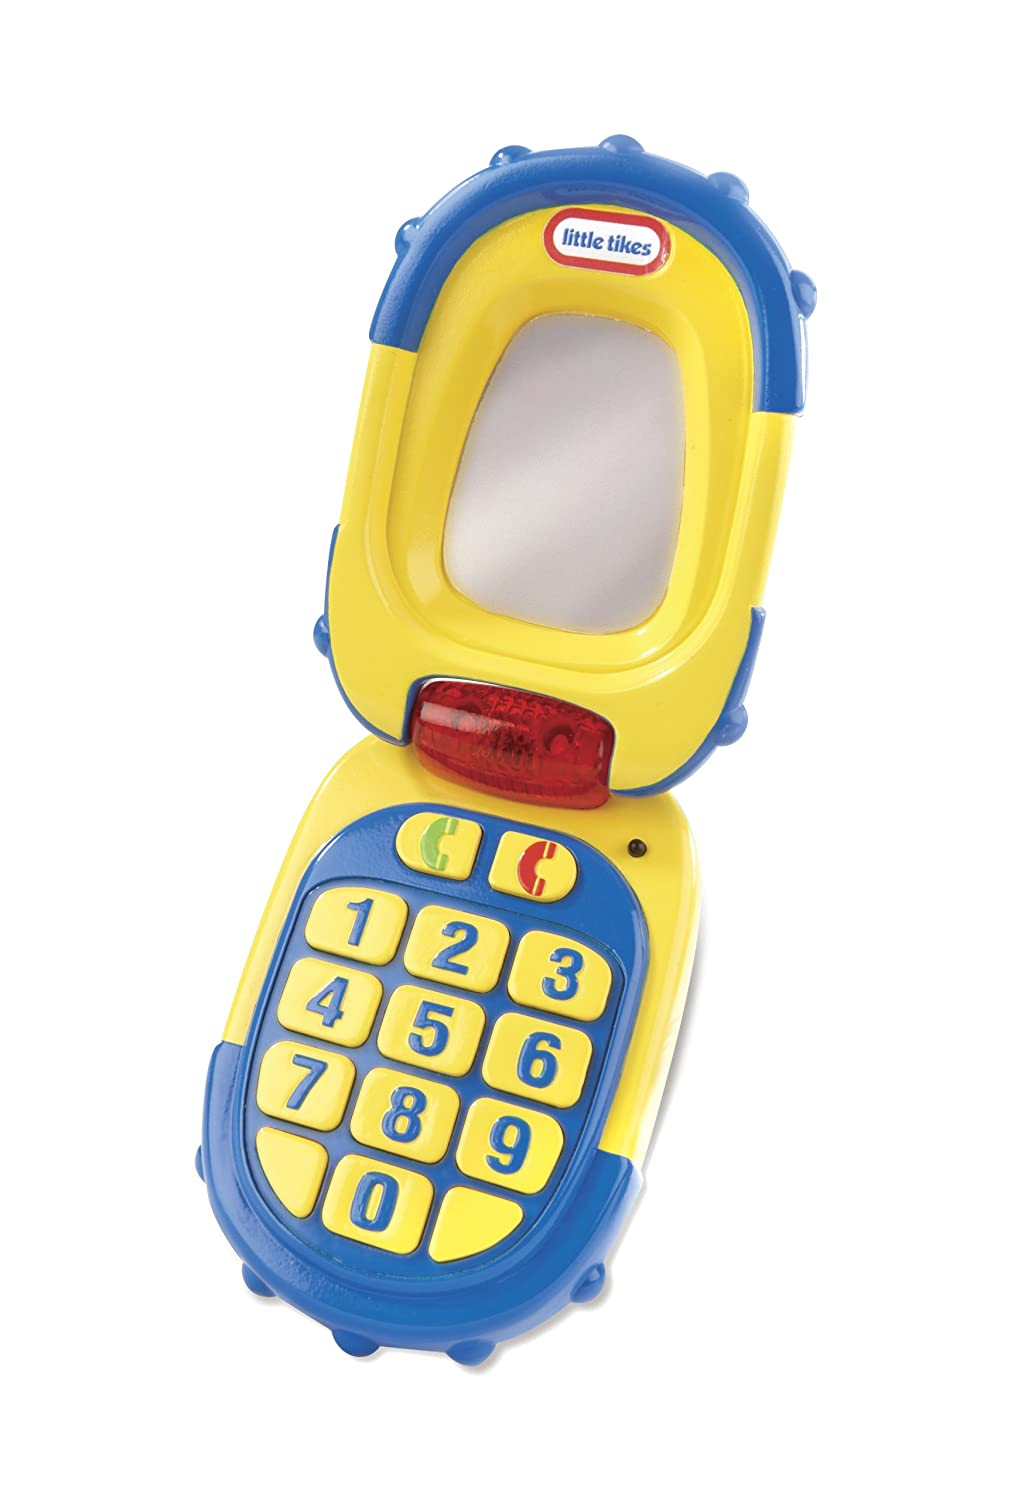 Little tikes cash register - Little Tikes Cash Register 35